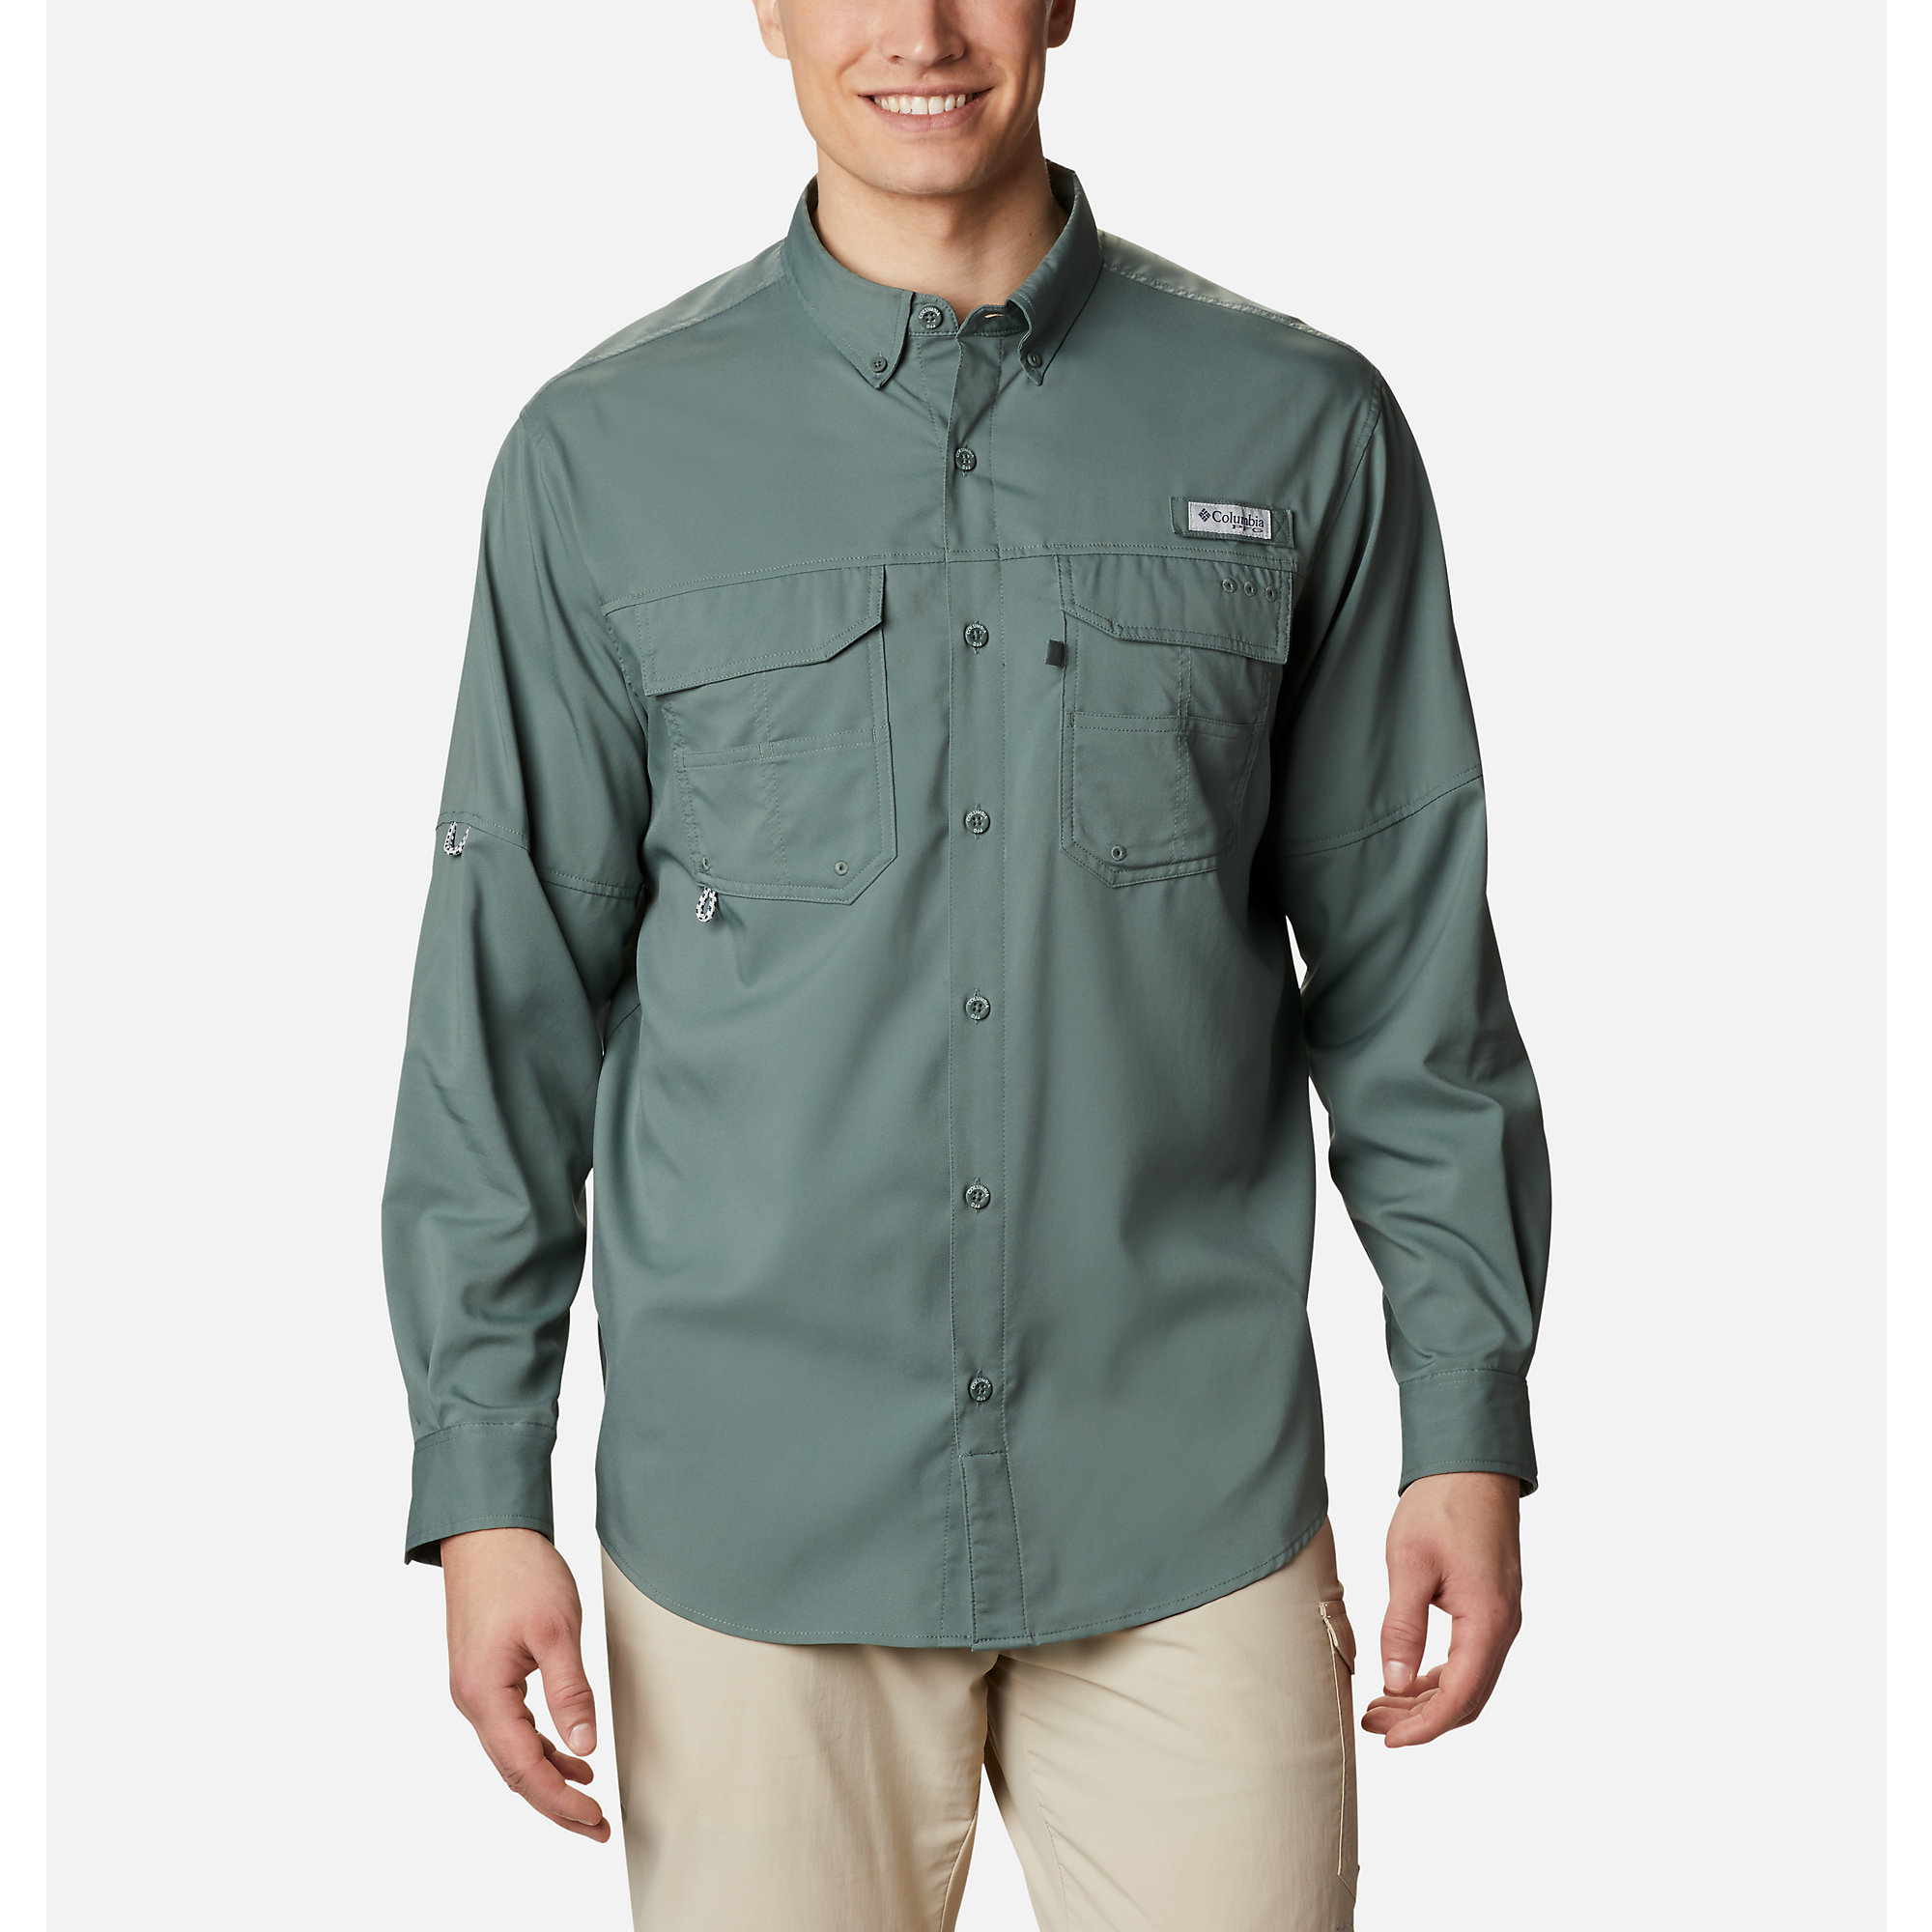 photo: Columbia PFG Blood and Guts III Long Sleeve Woven Shirt